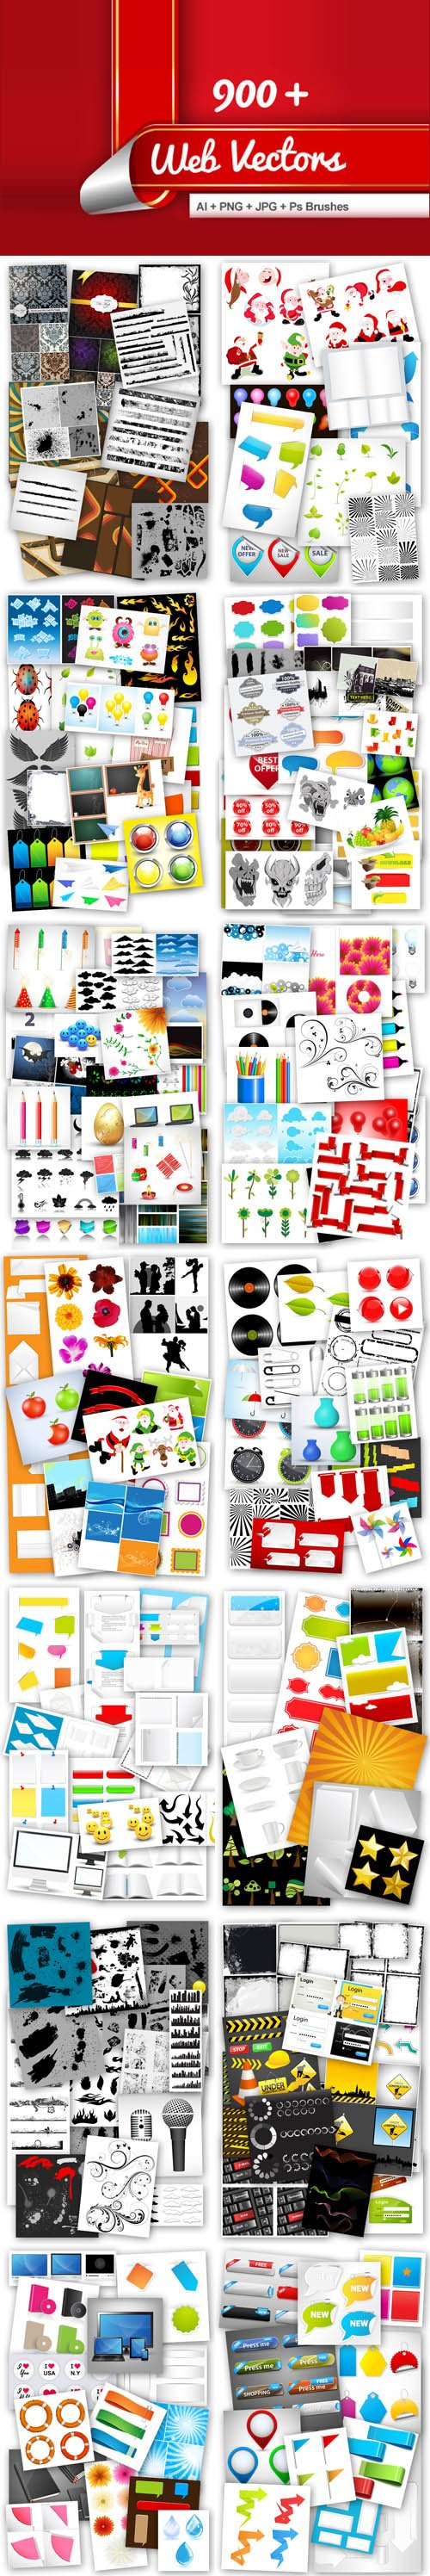 900+ Web Vectors + PNG & Photoshop Brushes (Re-Up)